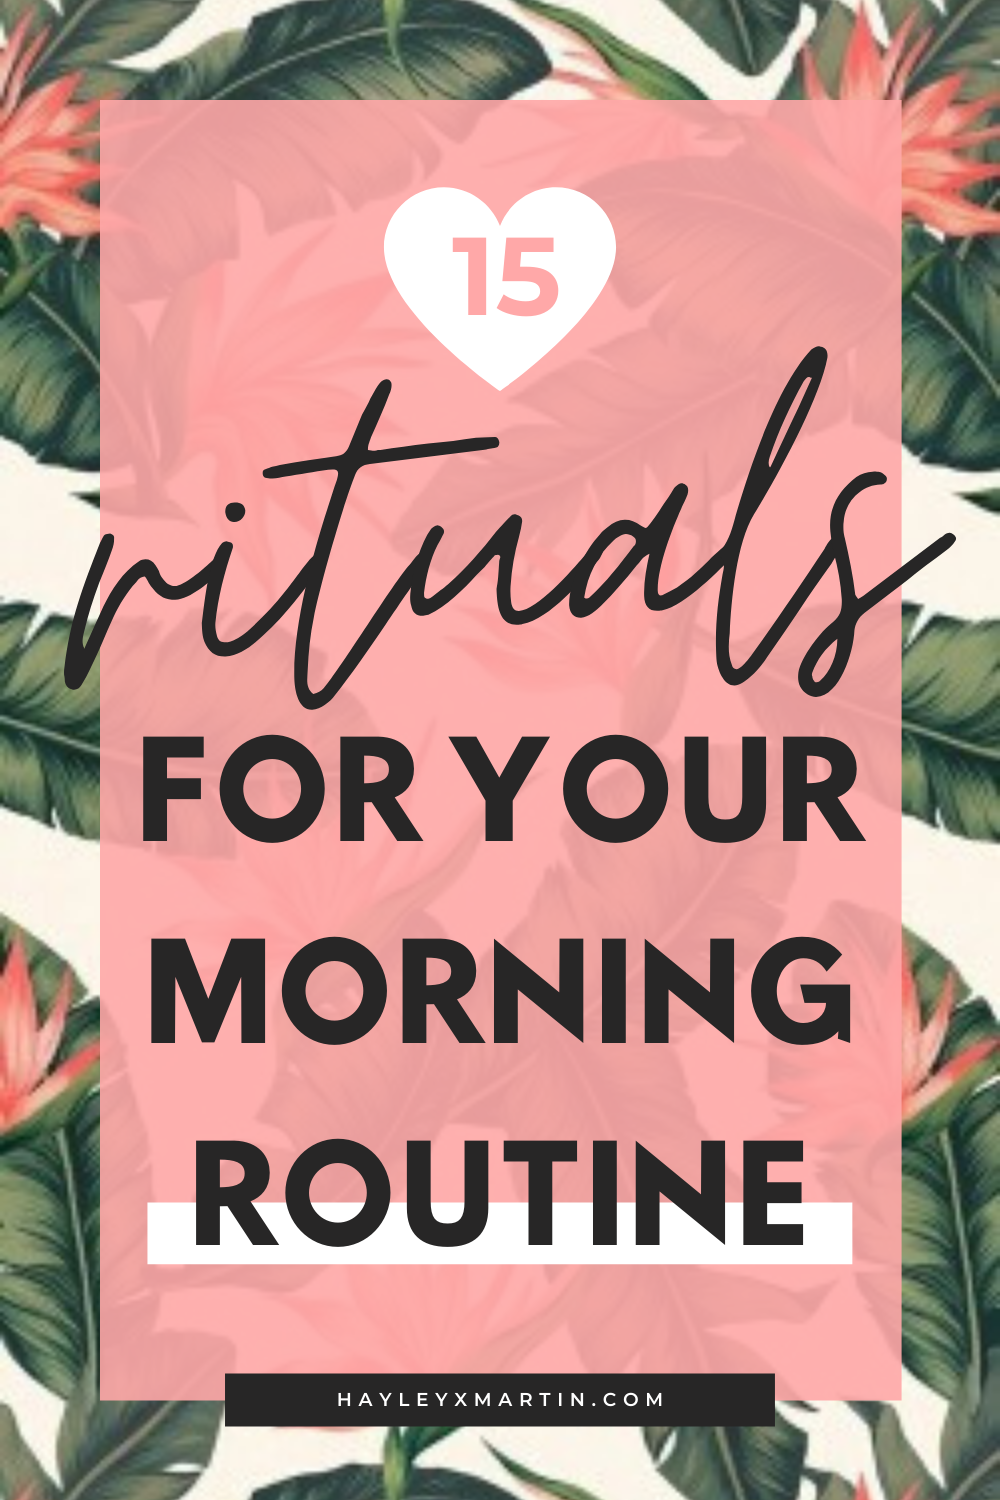 15 RITUALS FOR YOUR MORNING ROUTINE | HAYLEYXMARTIN